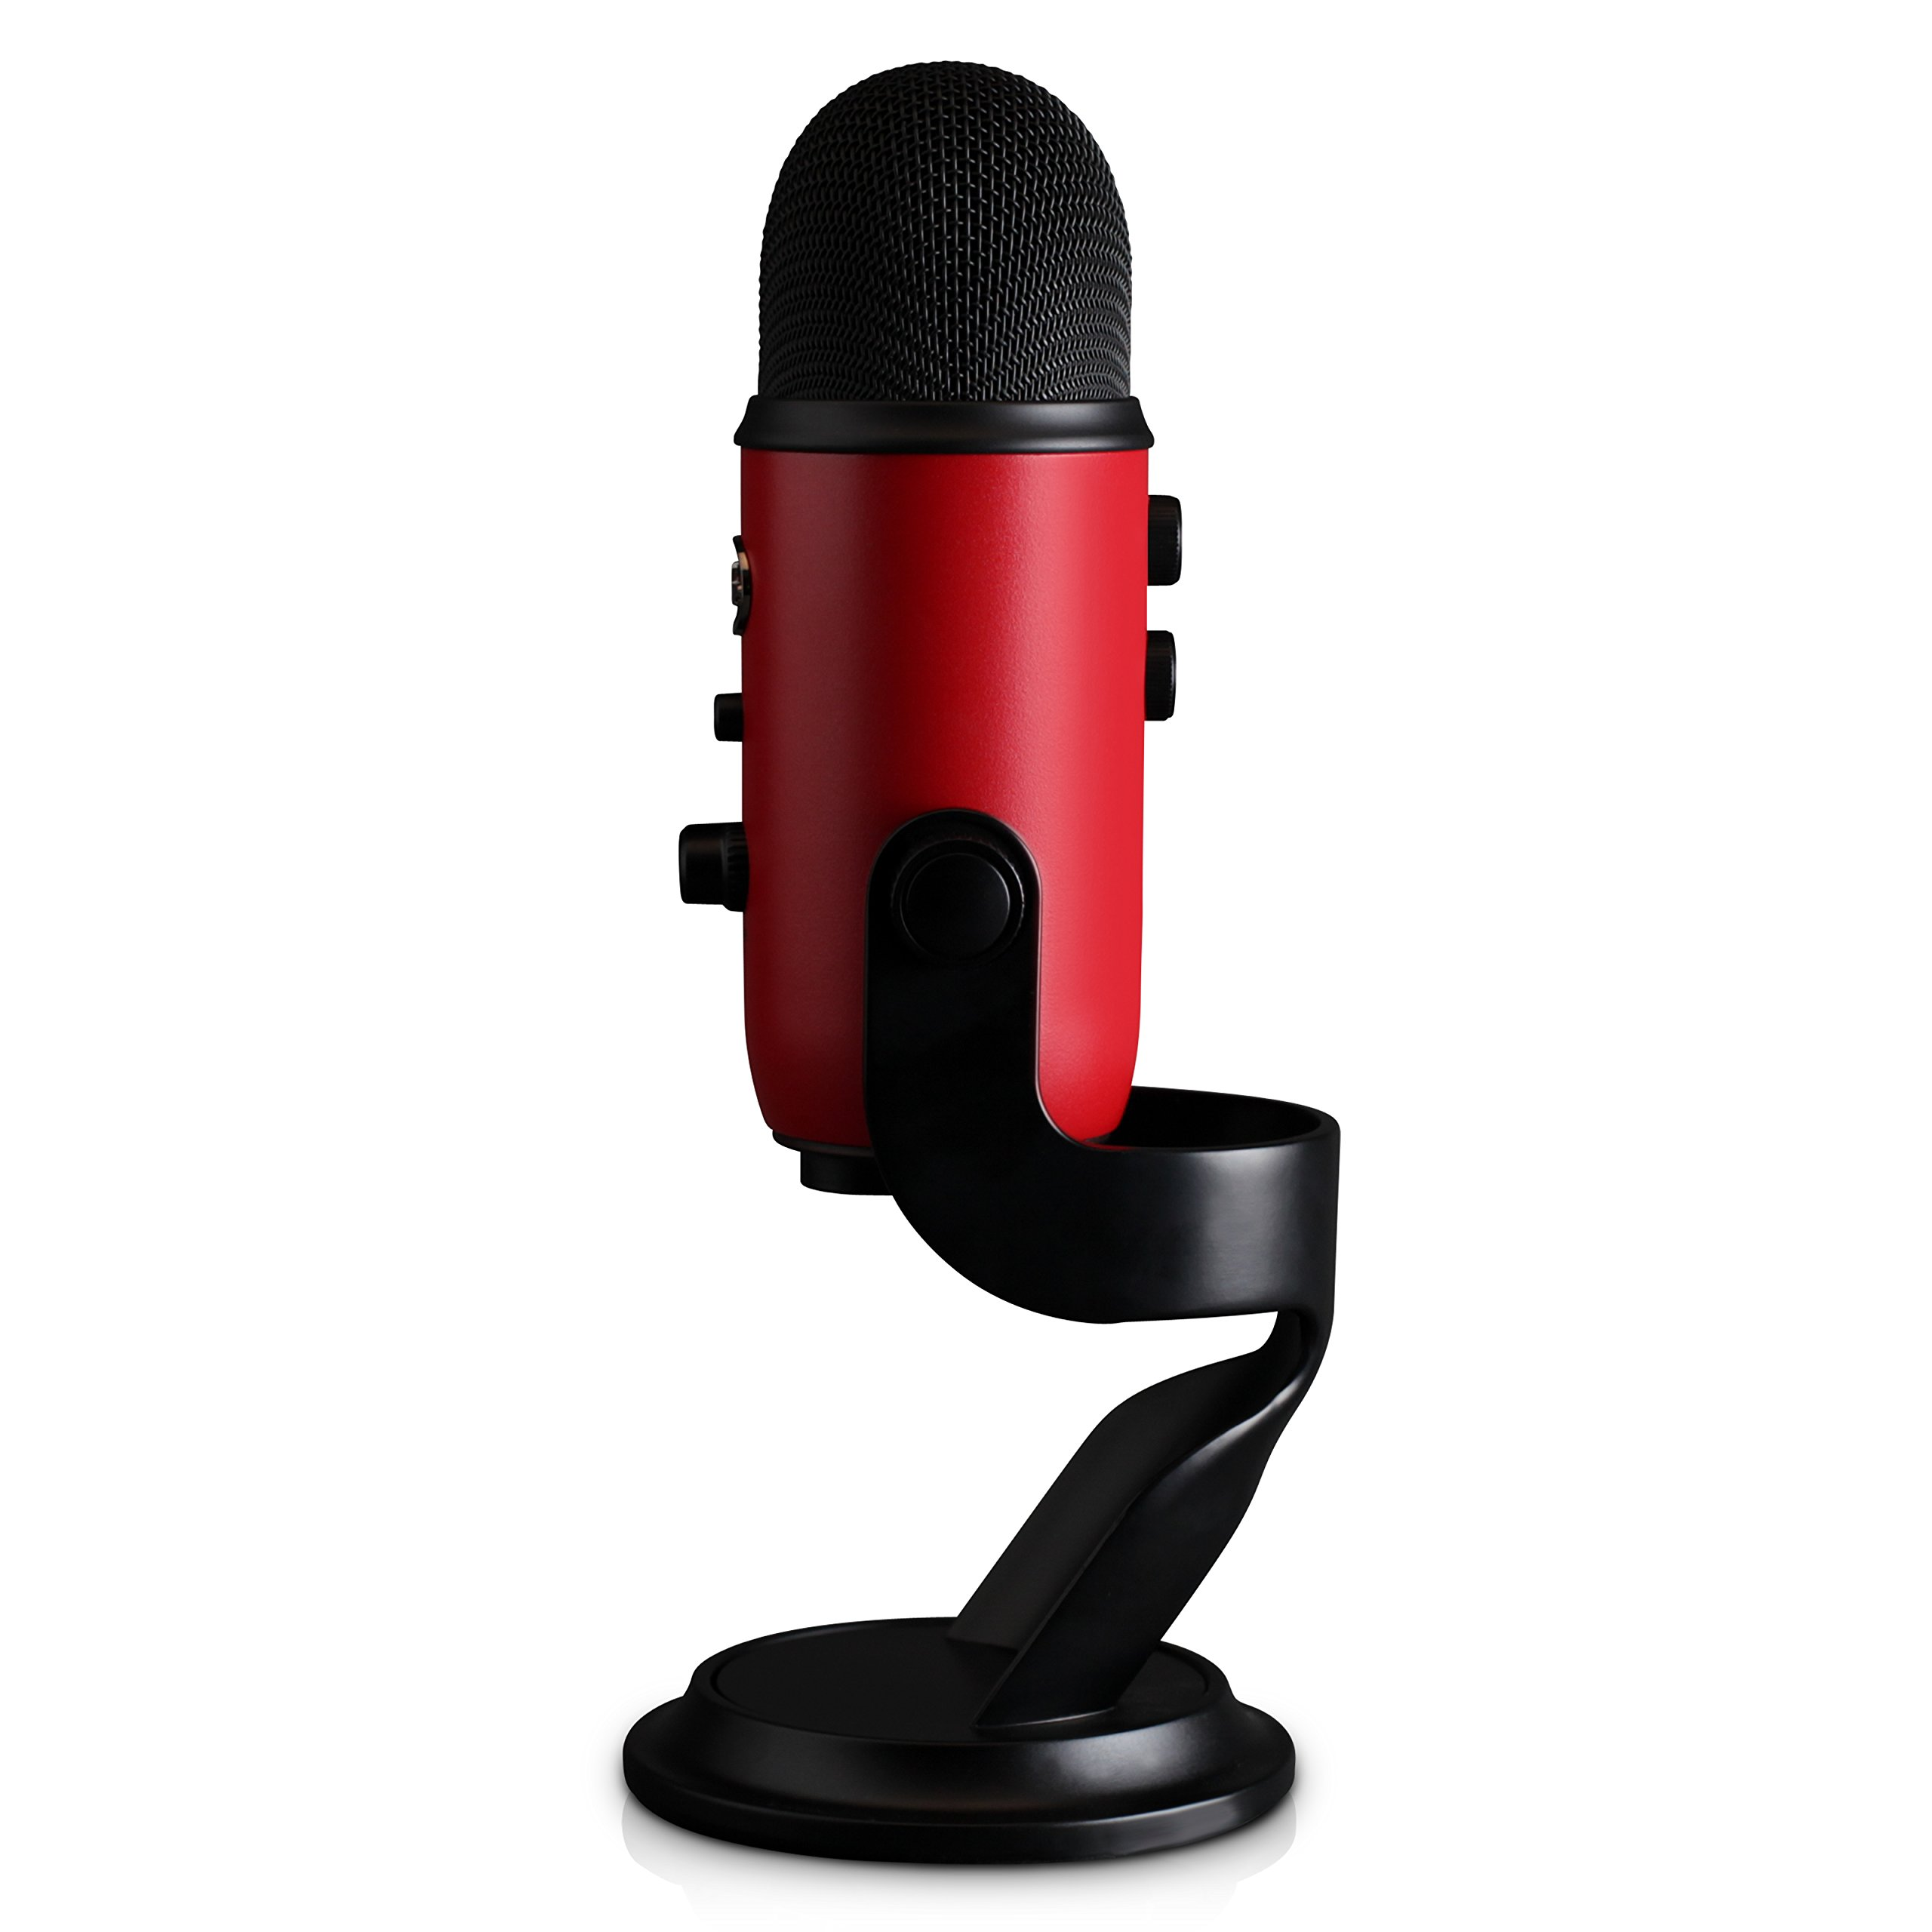 Blue Yeti USB Microphone - Satin Red by Blue (Image #3)